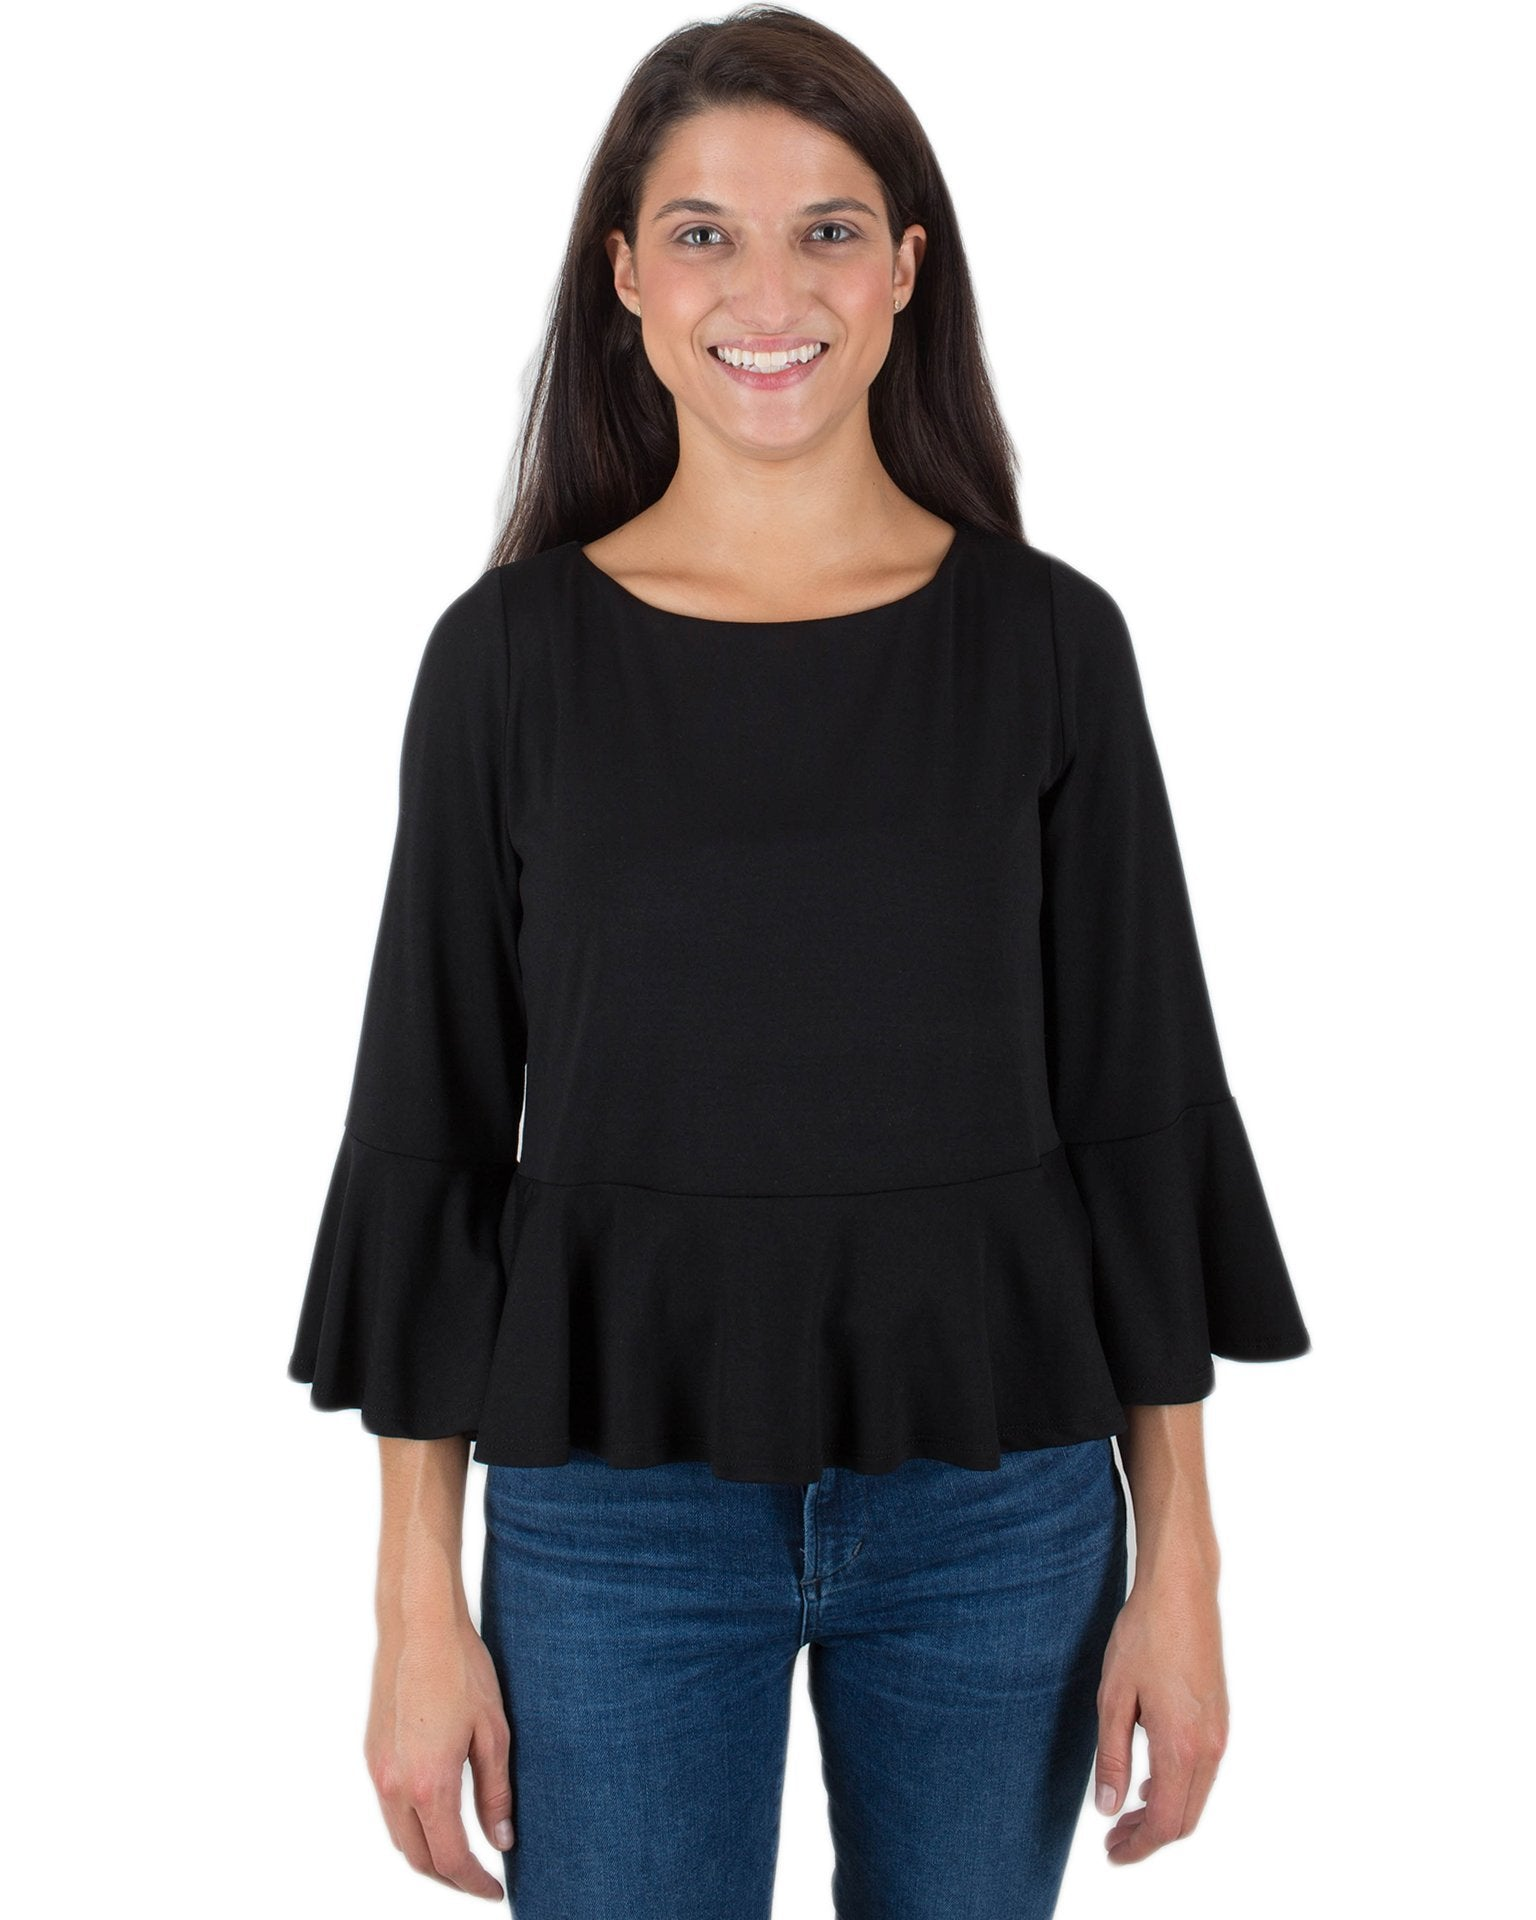 Susana Monaco Clothing Black / XS Ruffle Edge Top